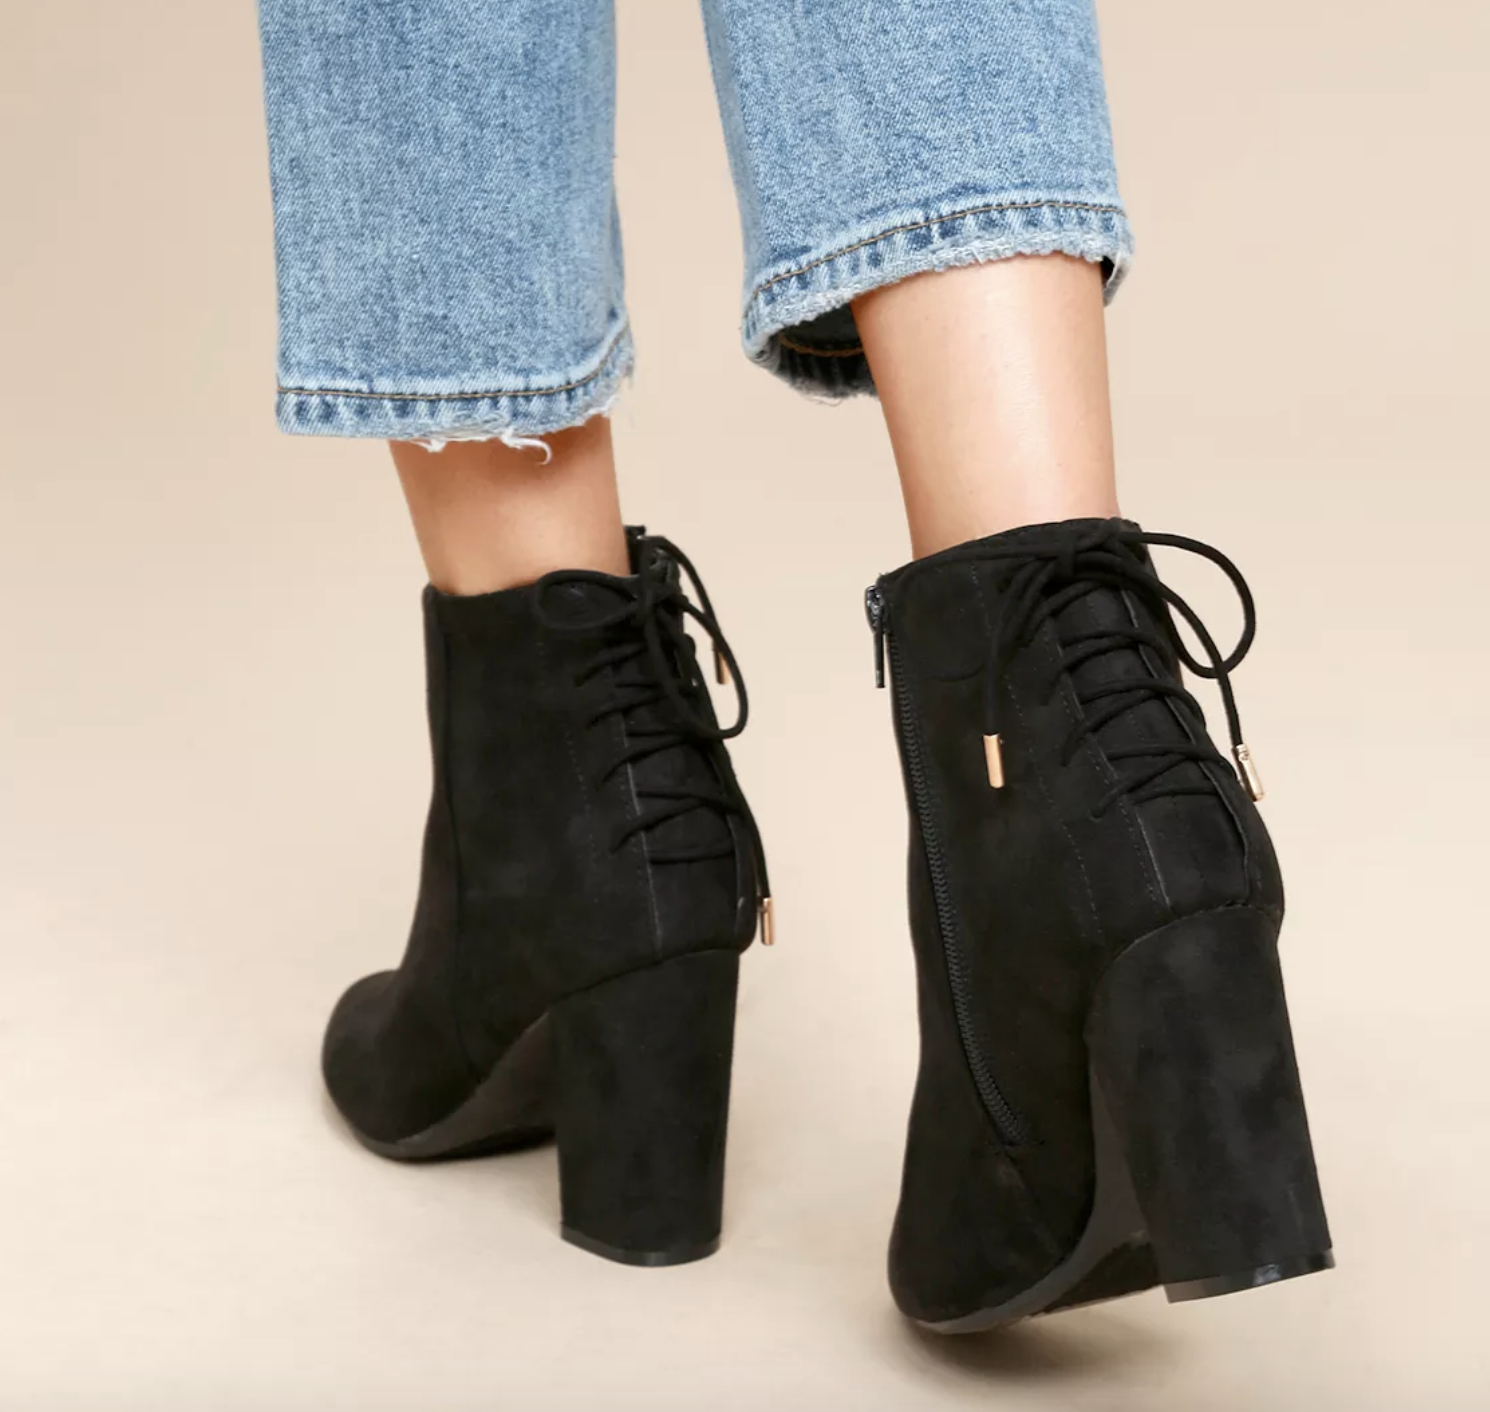 Vegan Black Suede Booties | smelltheroses.com